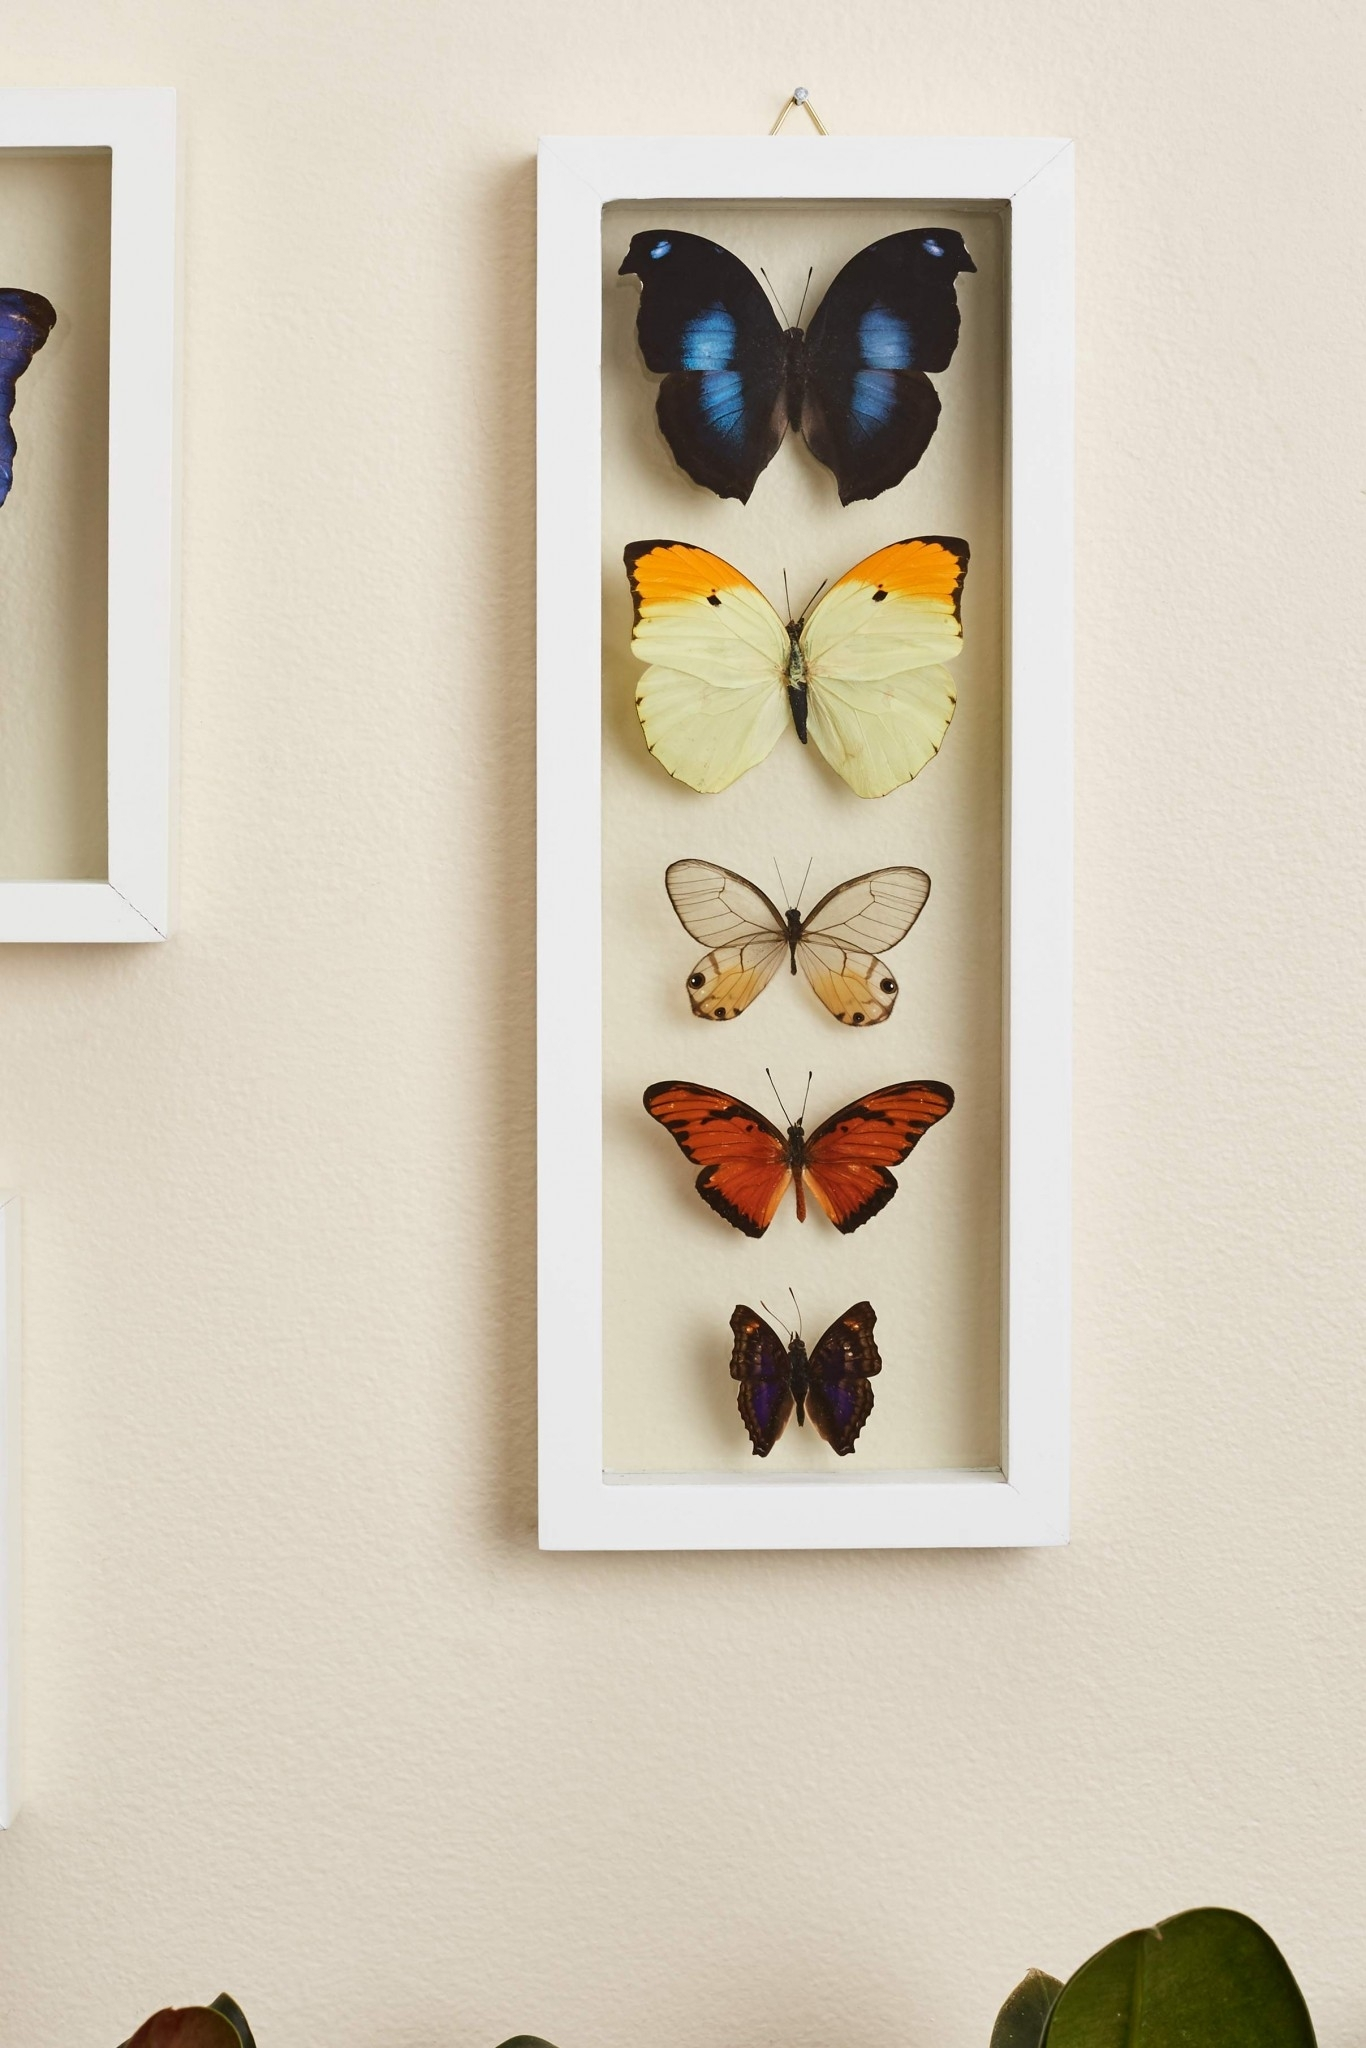 Search Results For: 'butterflies' – Earthbound Trading Co. Pertaining To 2018 Earthbound Canvas Wall Art (Gallery 8 of 15)